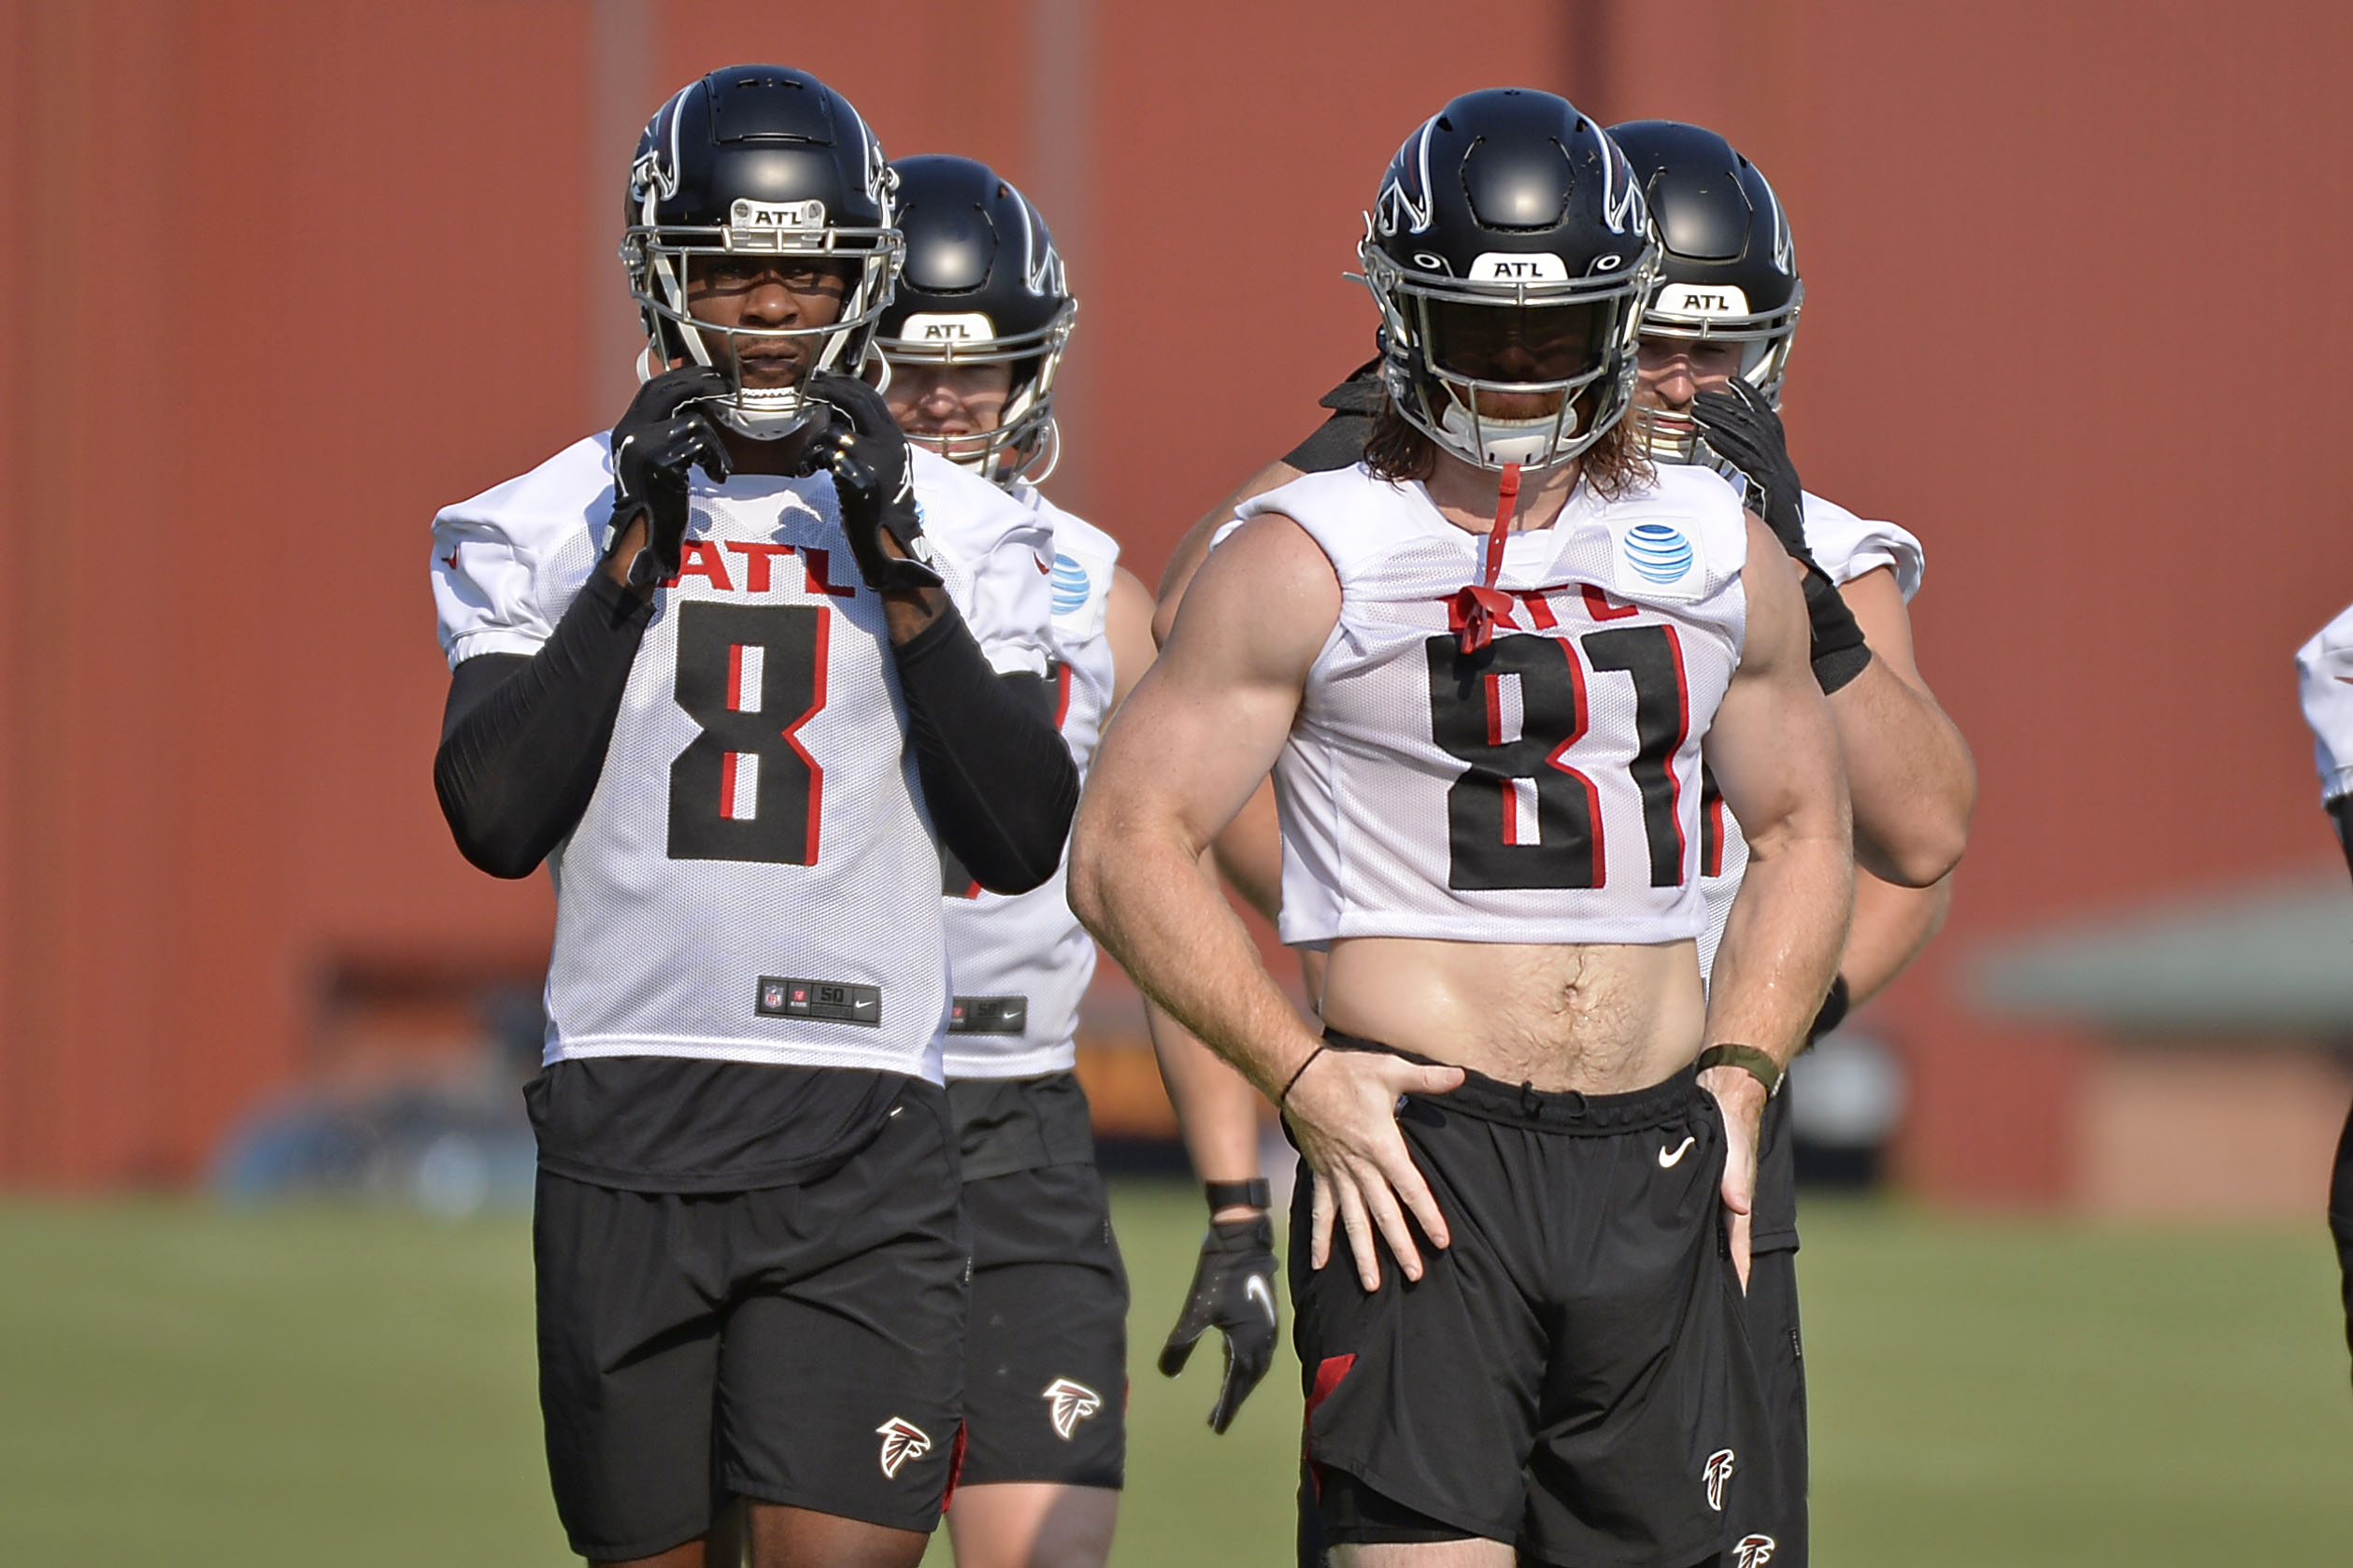 Kyle Pitts #8 and Hayden Hurst #81 of the Atlanta Falcons attend the first day of Falcons Training Camp at IBM Performance Field on July 29, 2021 in Flowery Branch, Georgia.